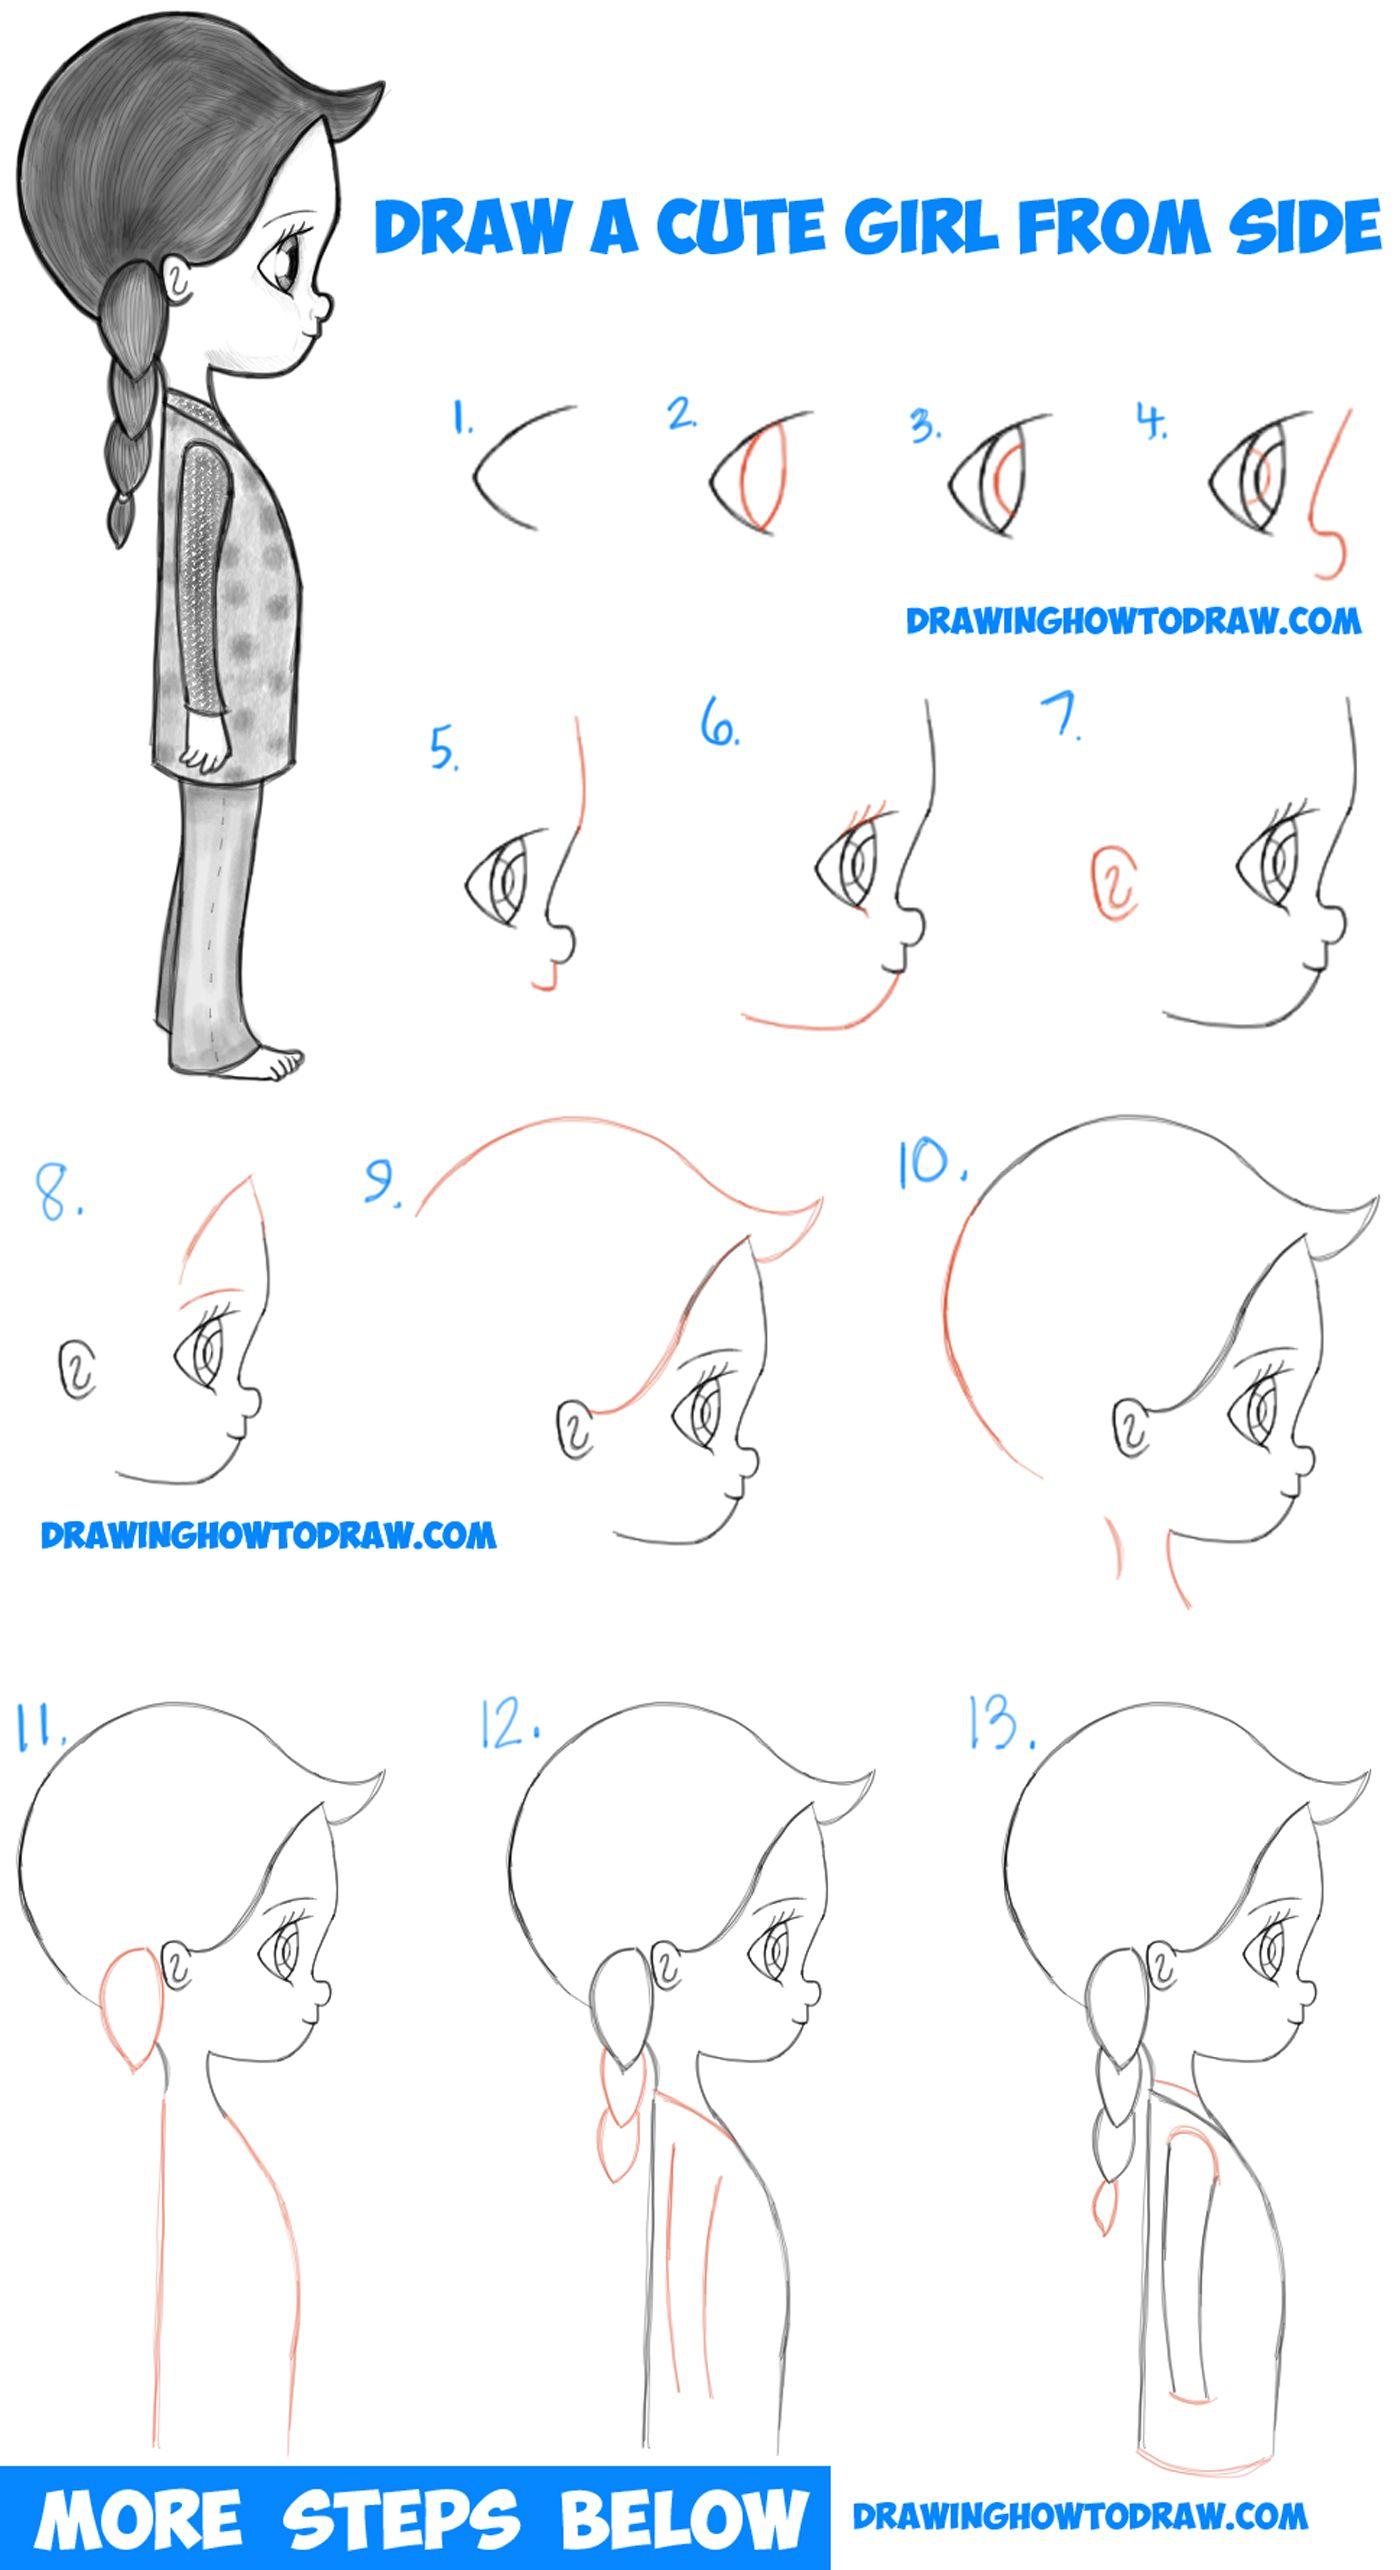 How to draw a cute chibi manga anime girl from the side view easy